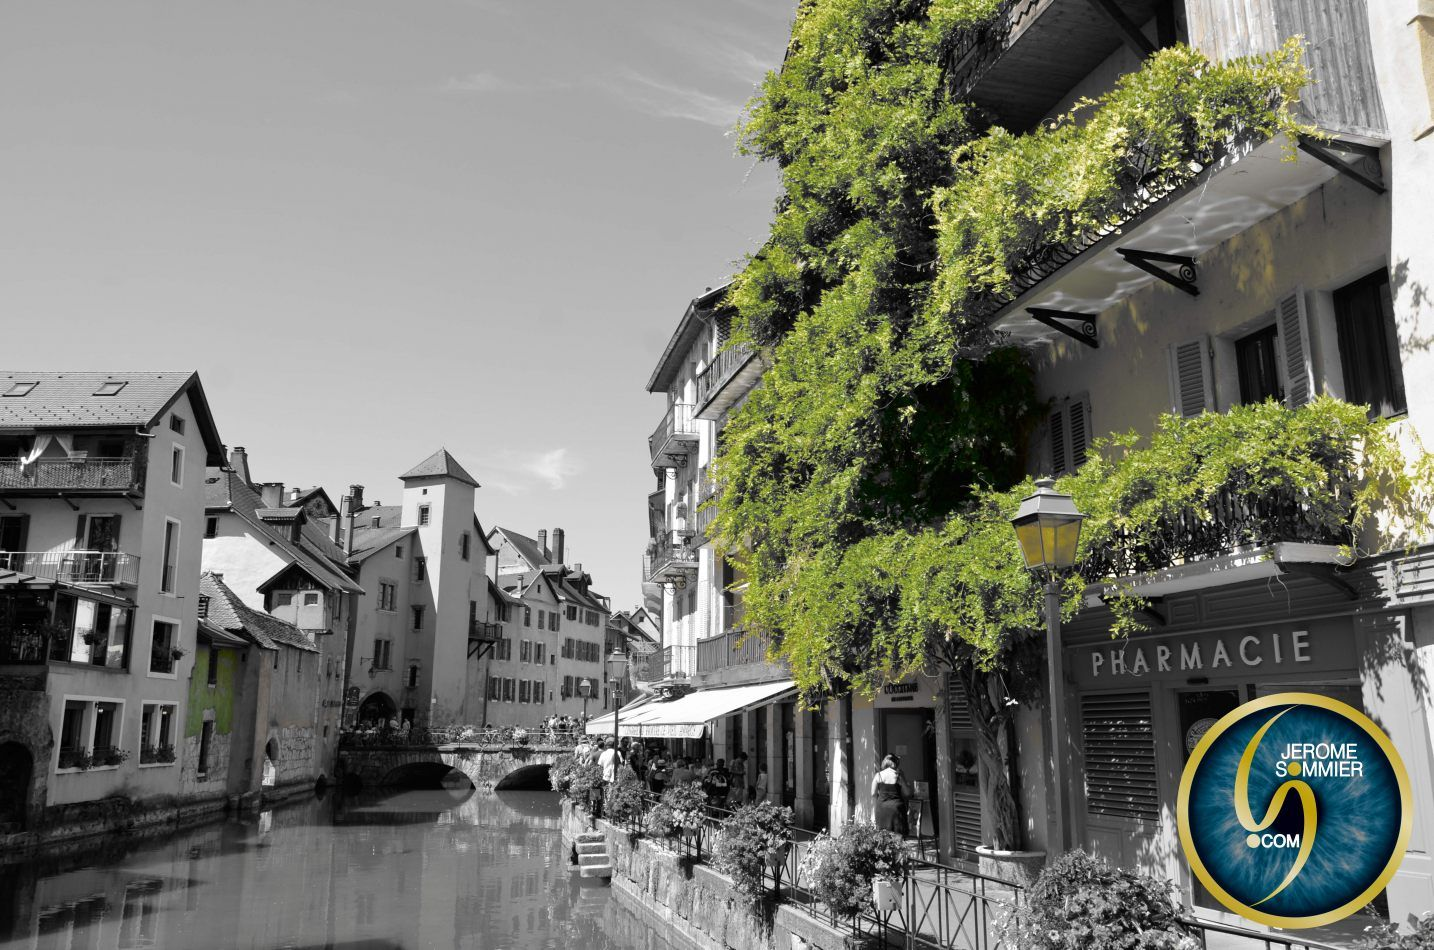 Jerome Sommier Photos - Photo & Graphism: Annecy